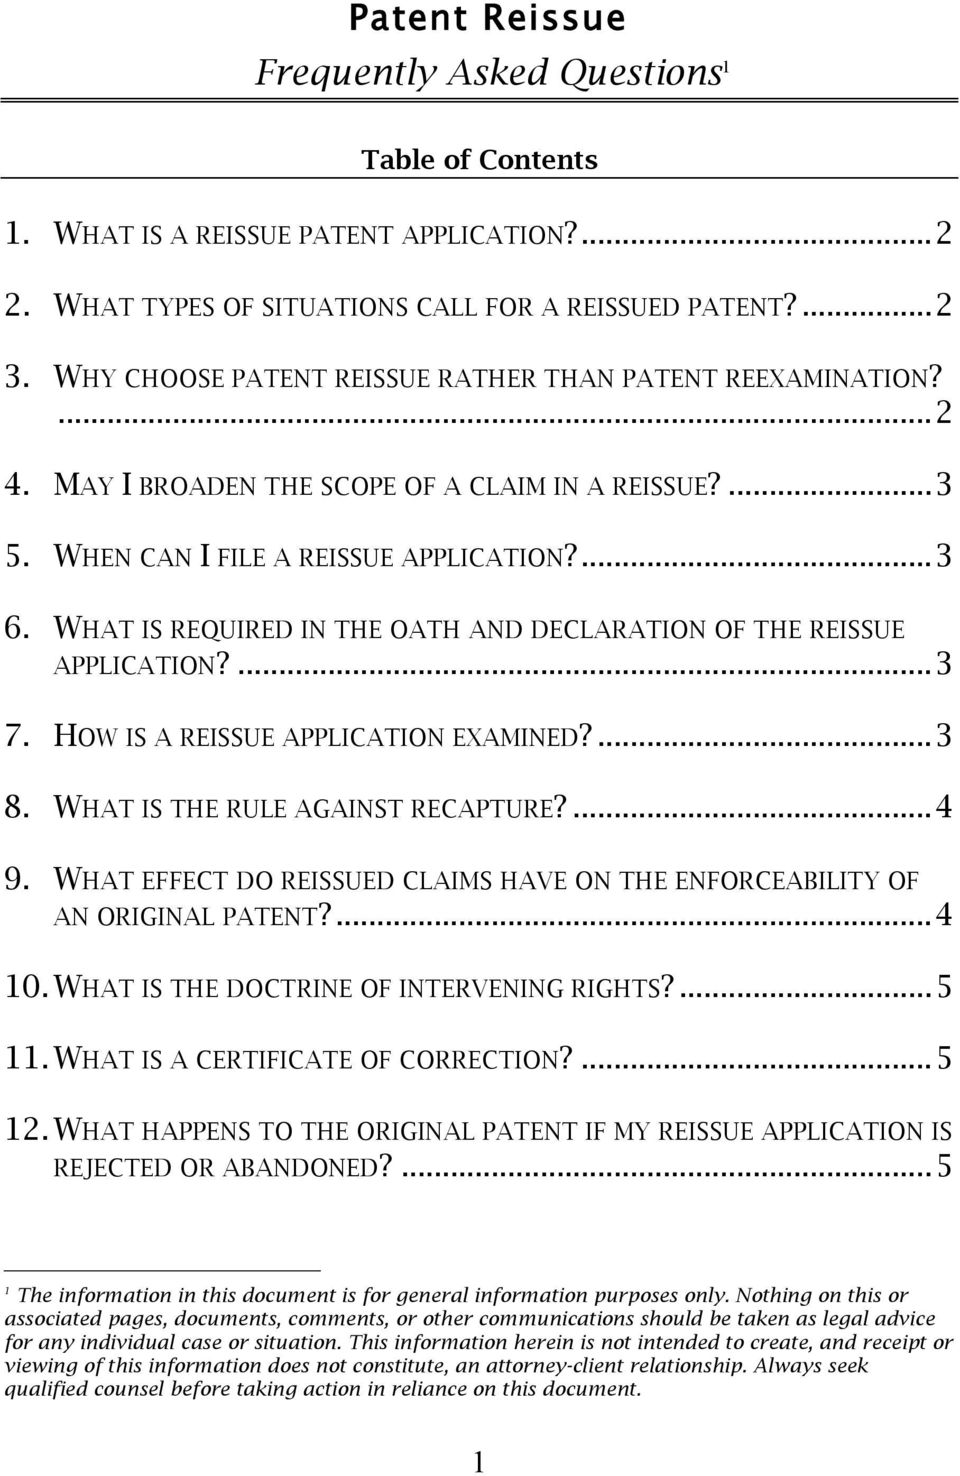 Patent Reissue Frequently Asked Questions Pdf